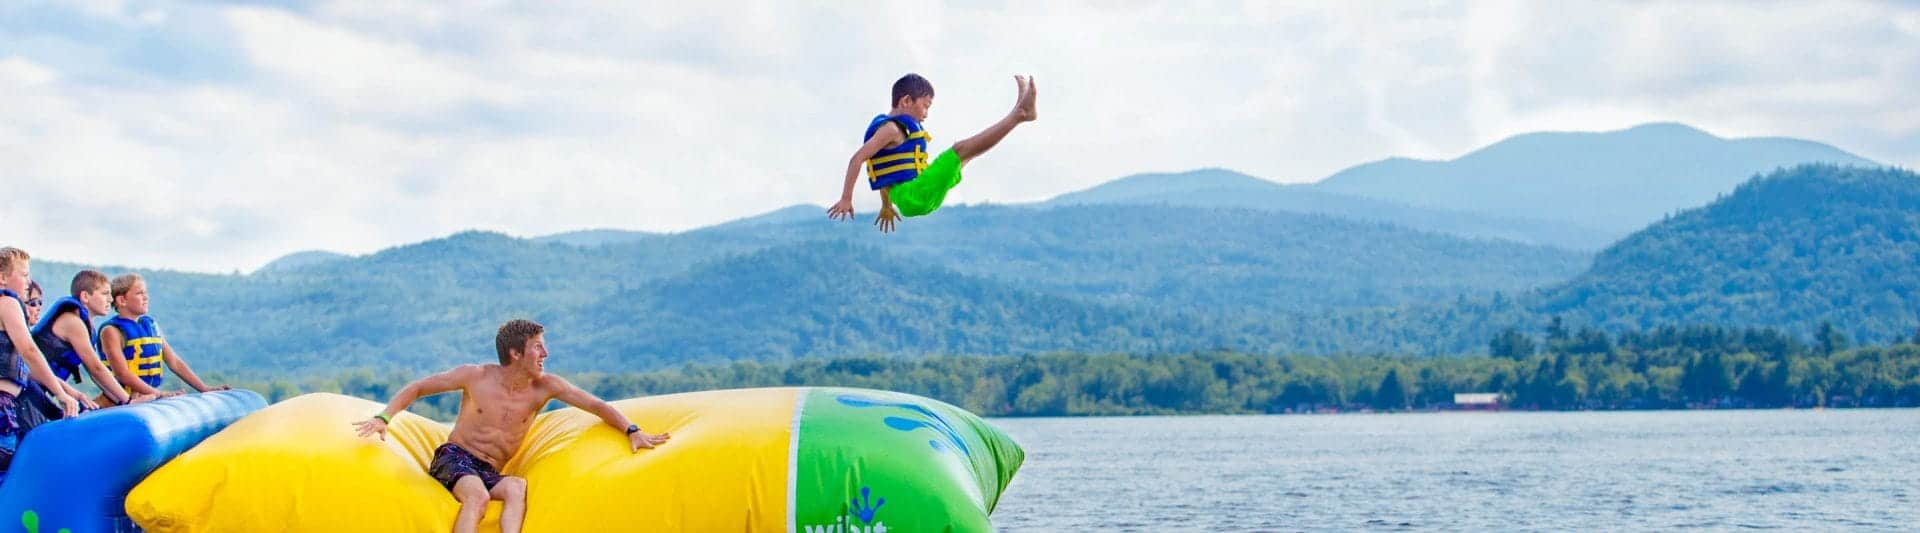 young boy on the blob at camp cody